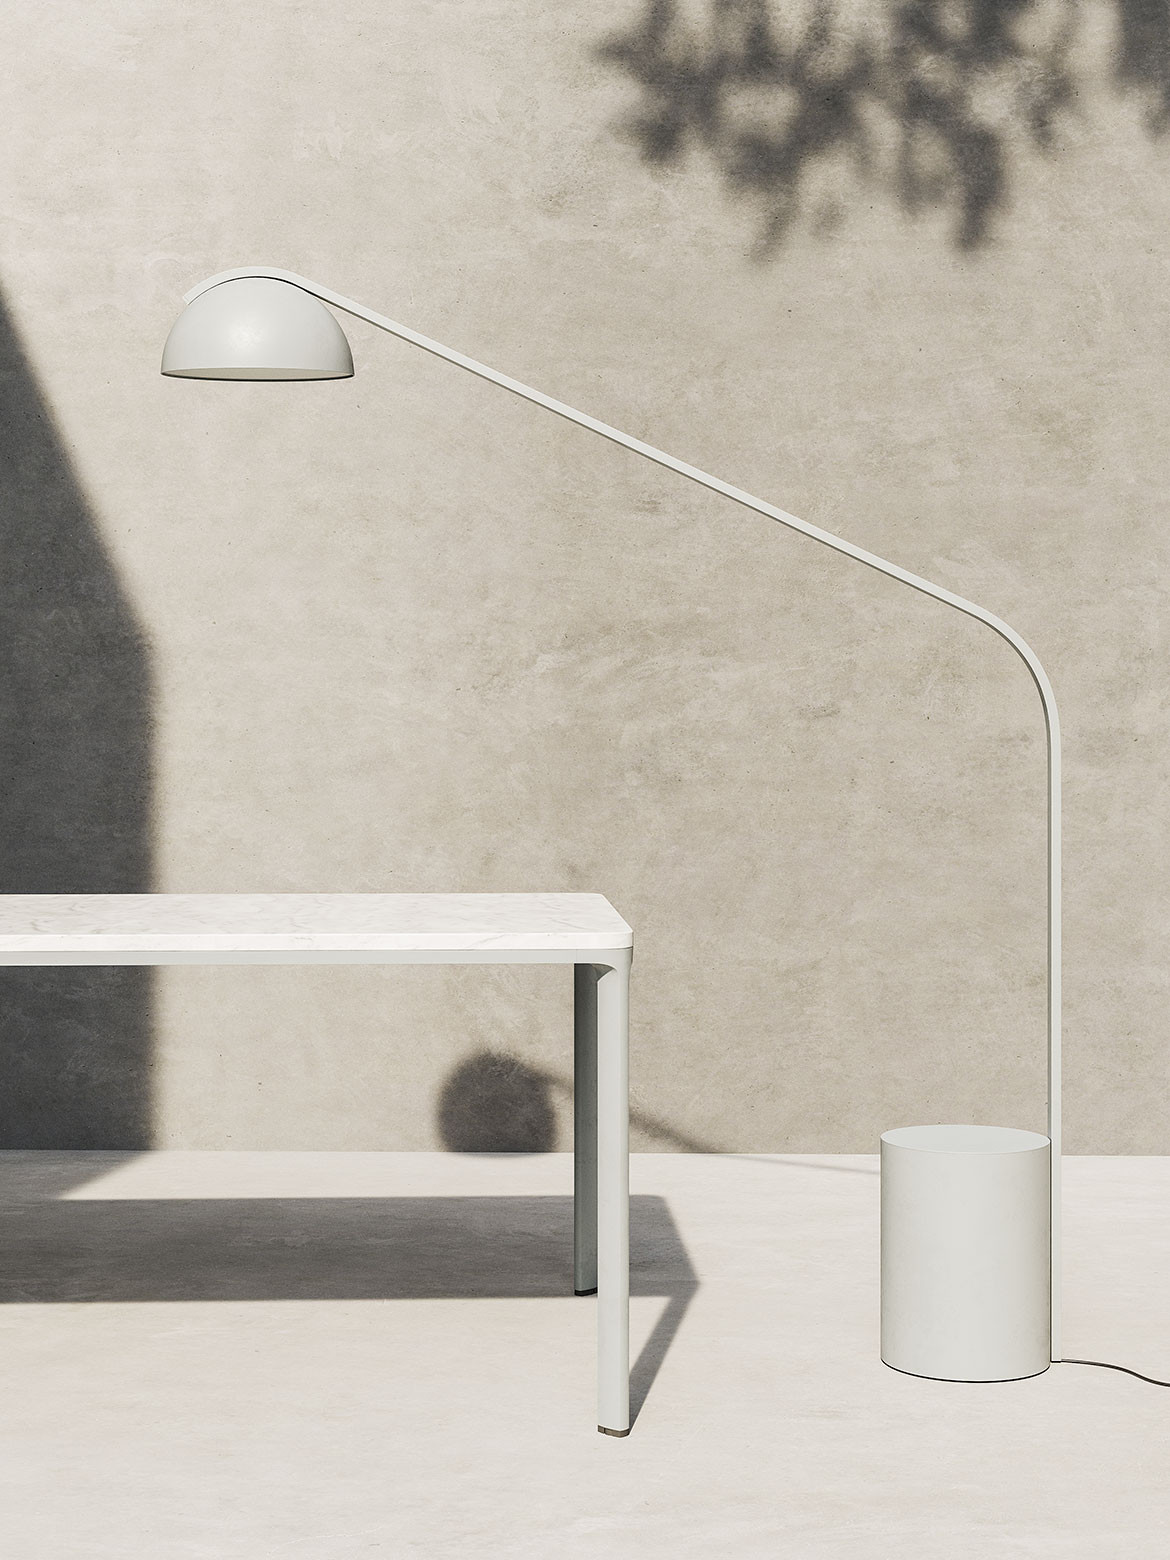 Designed by Japanese product designer Naoto Fukasawa for Kettal, the Half Dome Lamp is inspired by the moon.